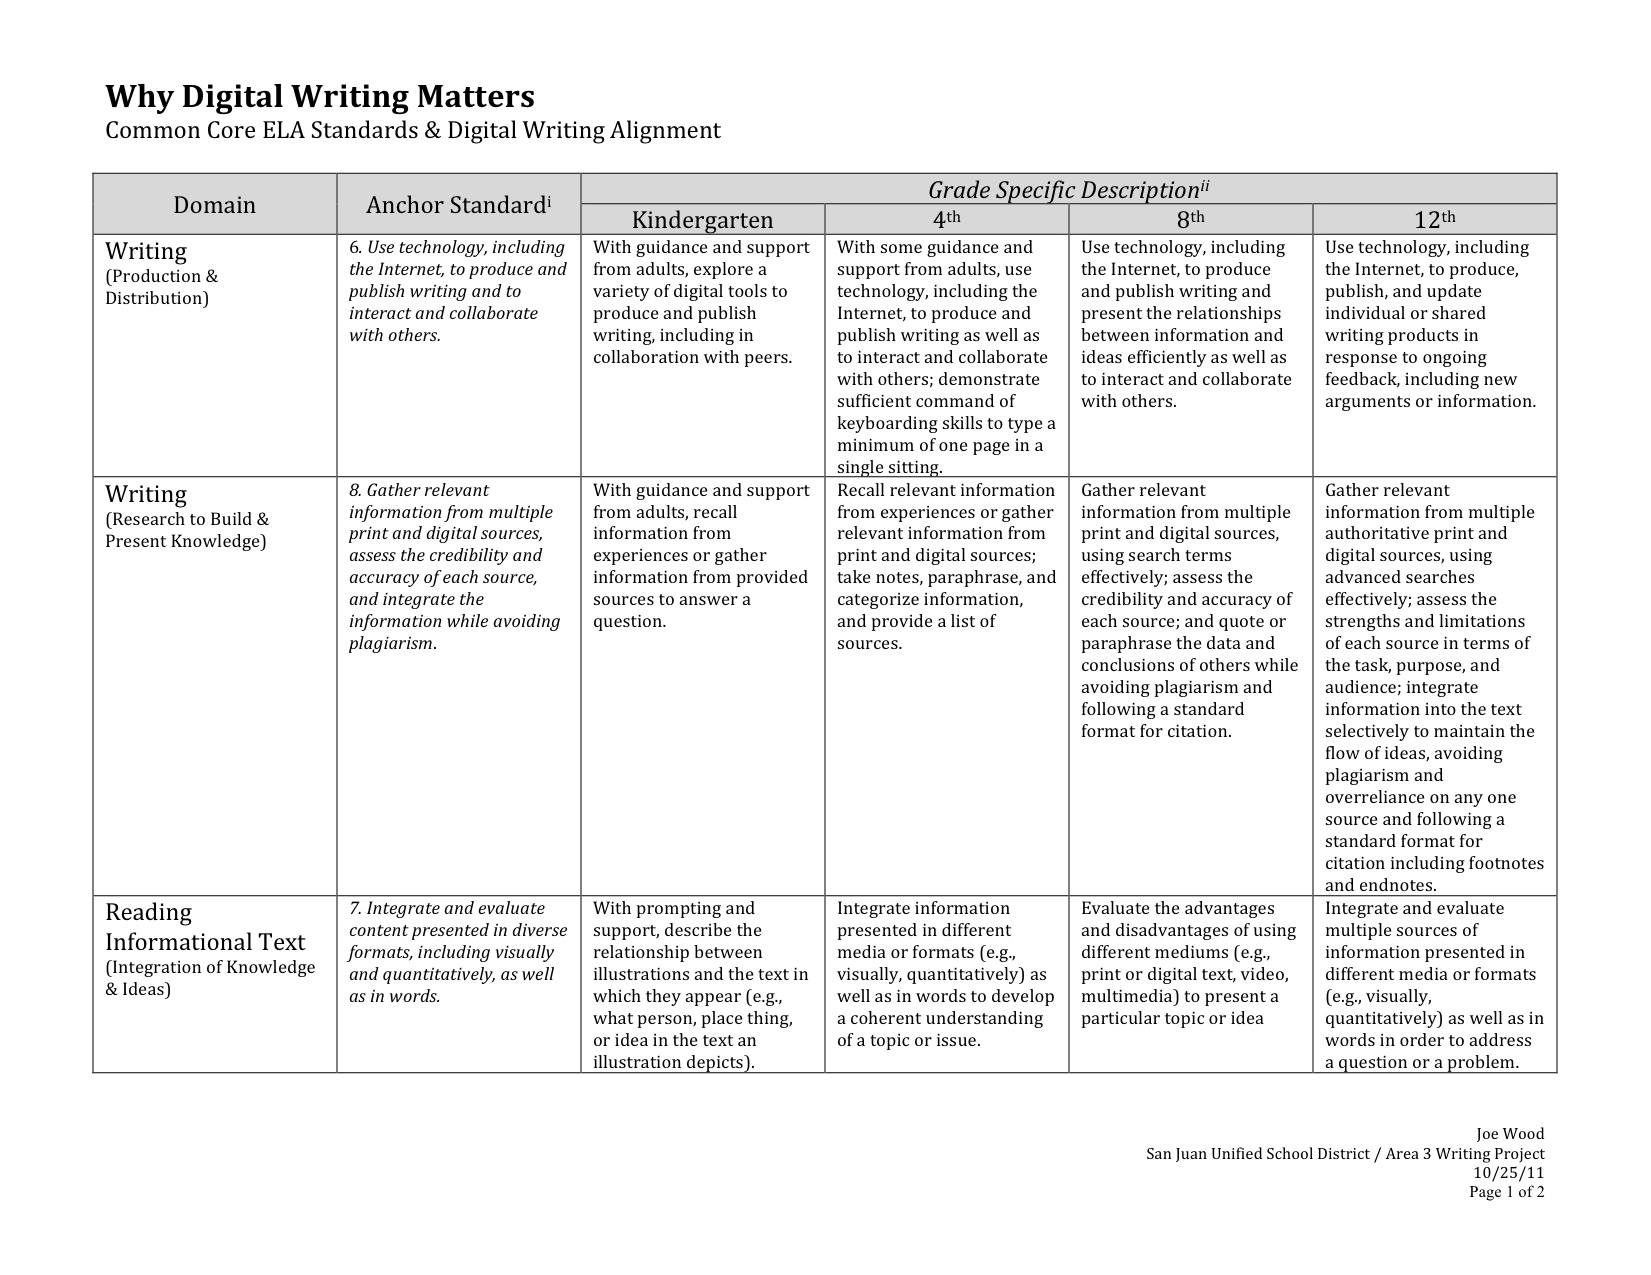 010 Why Digital Writing Matters According To The Common Core Ela Standards1 Research Paper Art History Unique Rubric Full